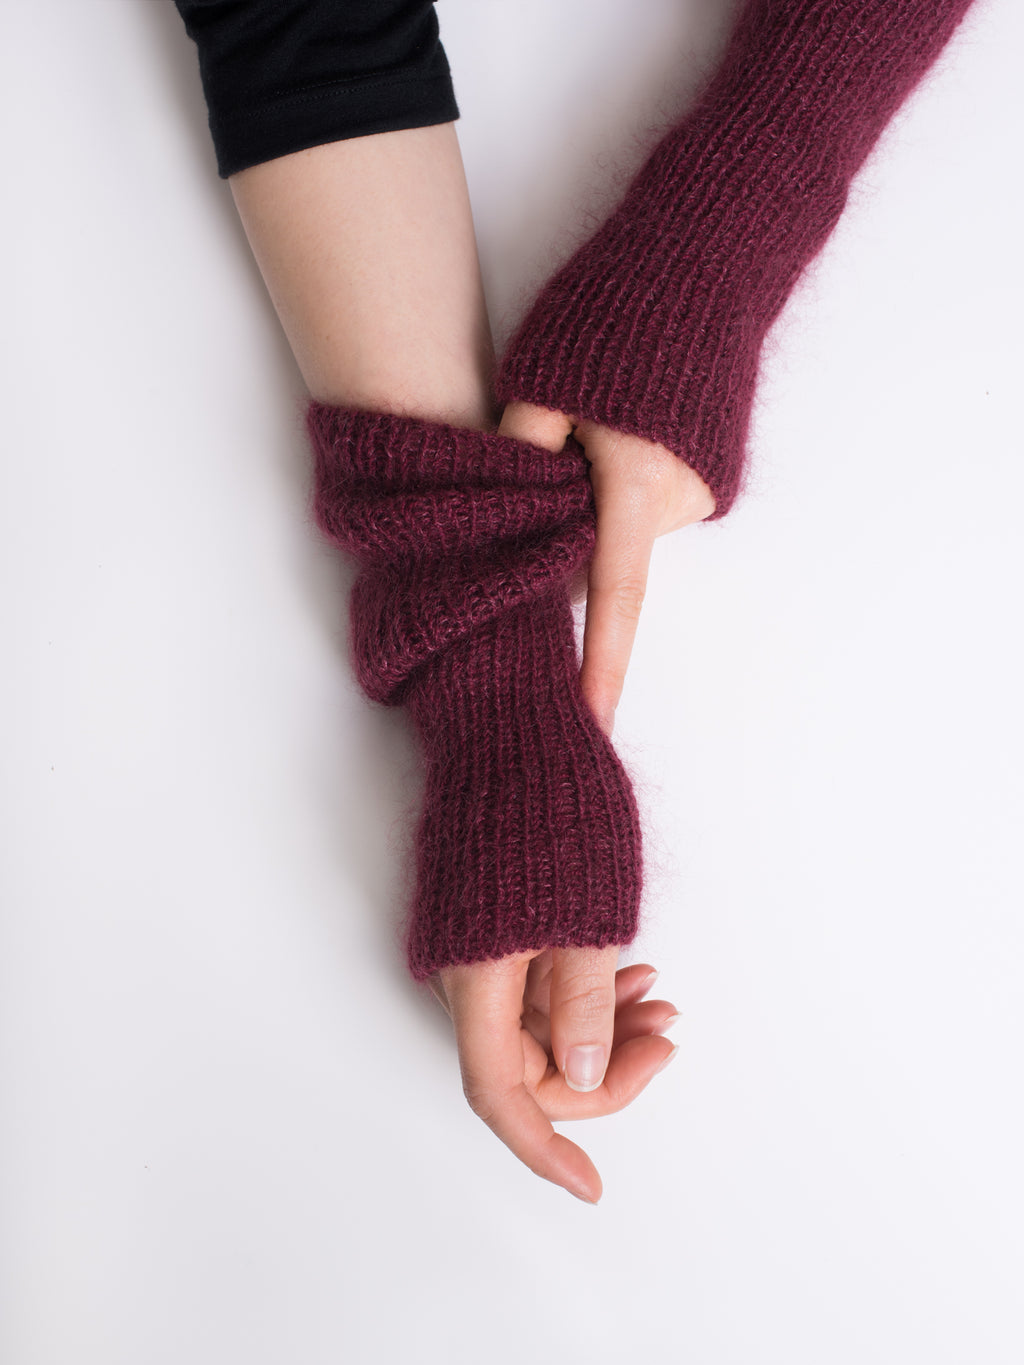 Coda Arm Warmers Pattern